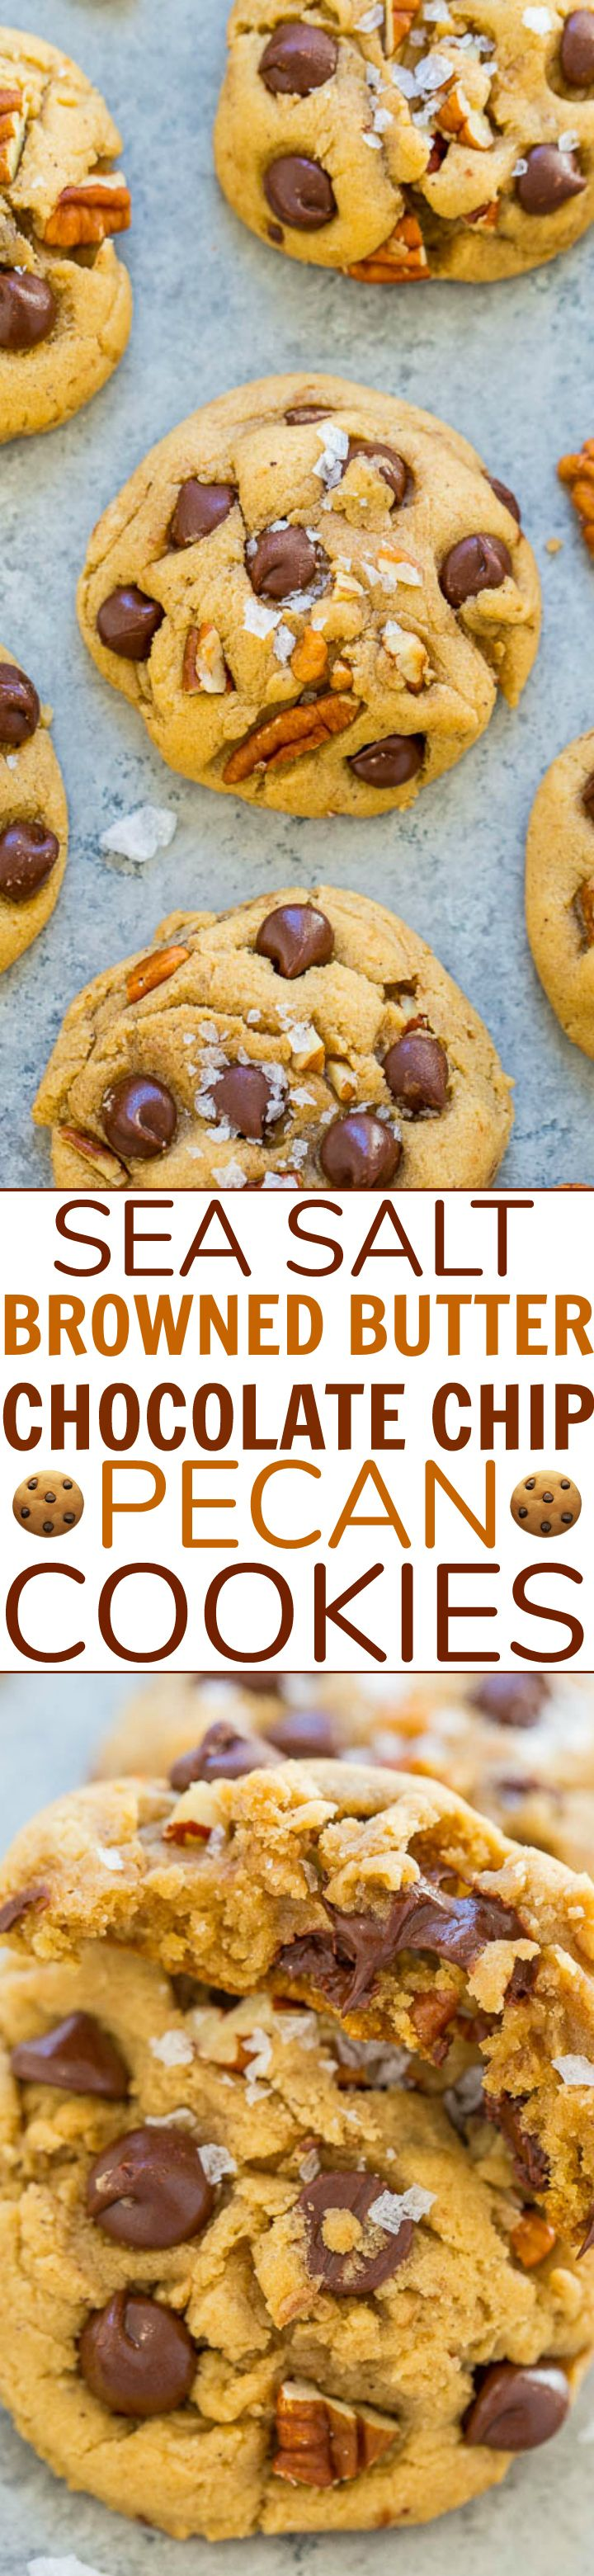 Sea Salt Browned Butter Chocolate Chip Pecan Cookies – Super soft, perfectly chewy, SALTY-AND-SWEET chocolate chip cookies that are AMAZING!! An EASY, one-bowl, no-mixer recipe!!